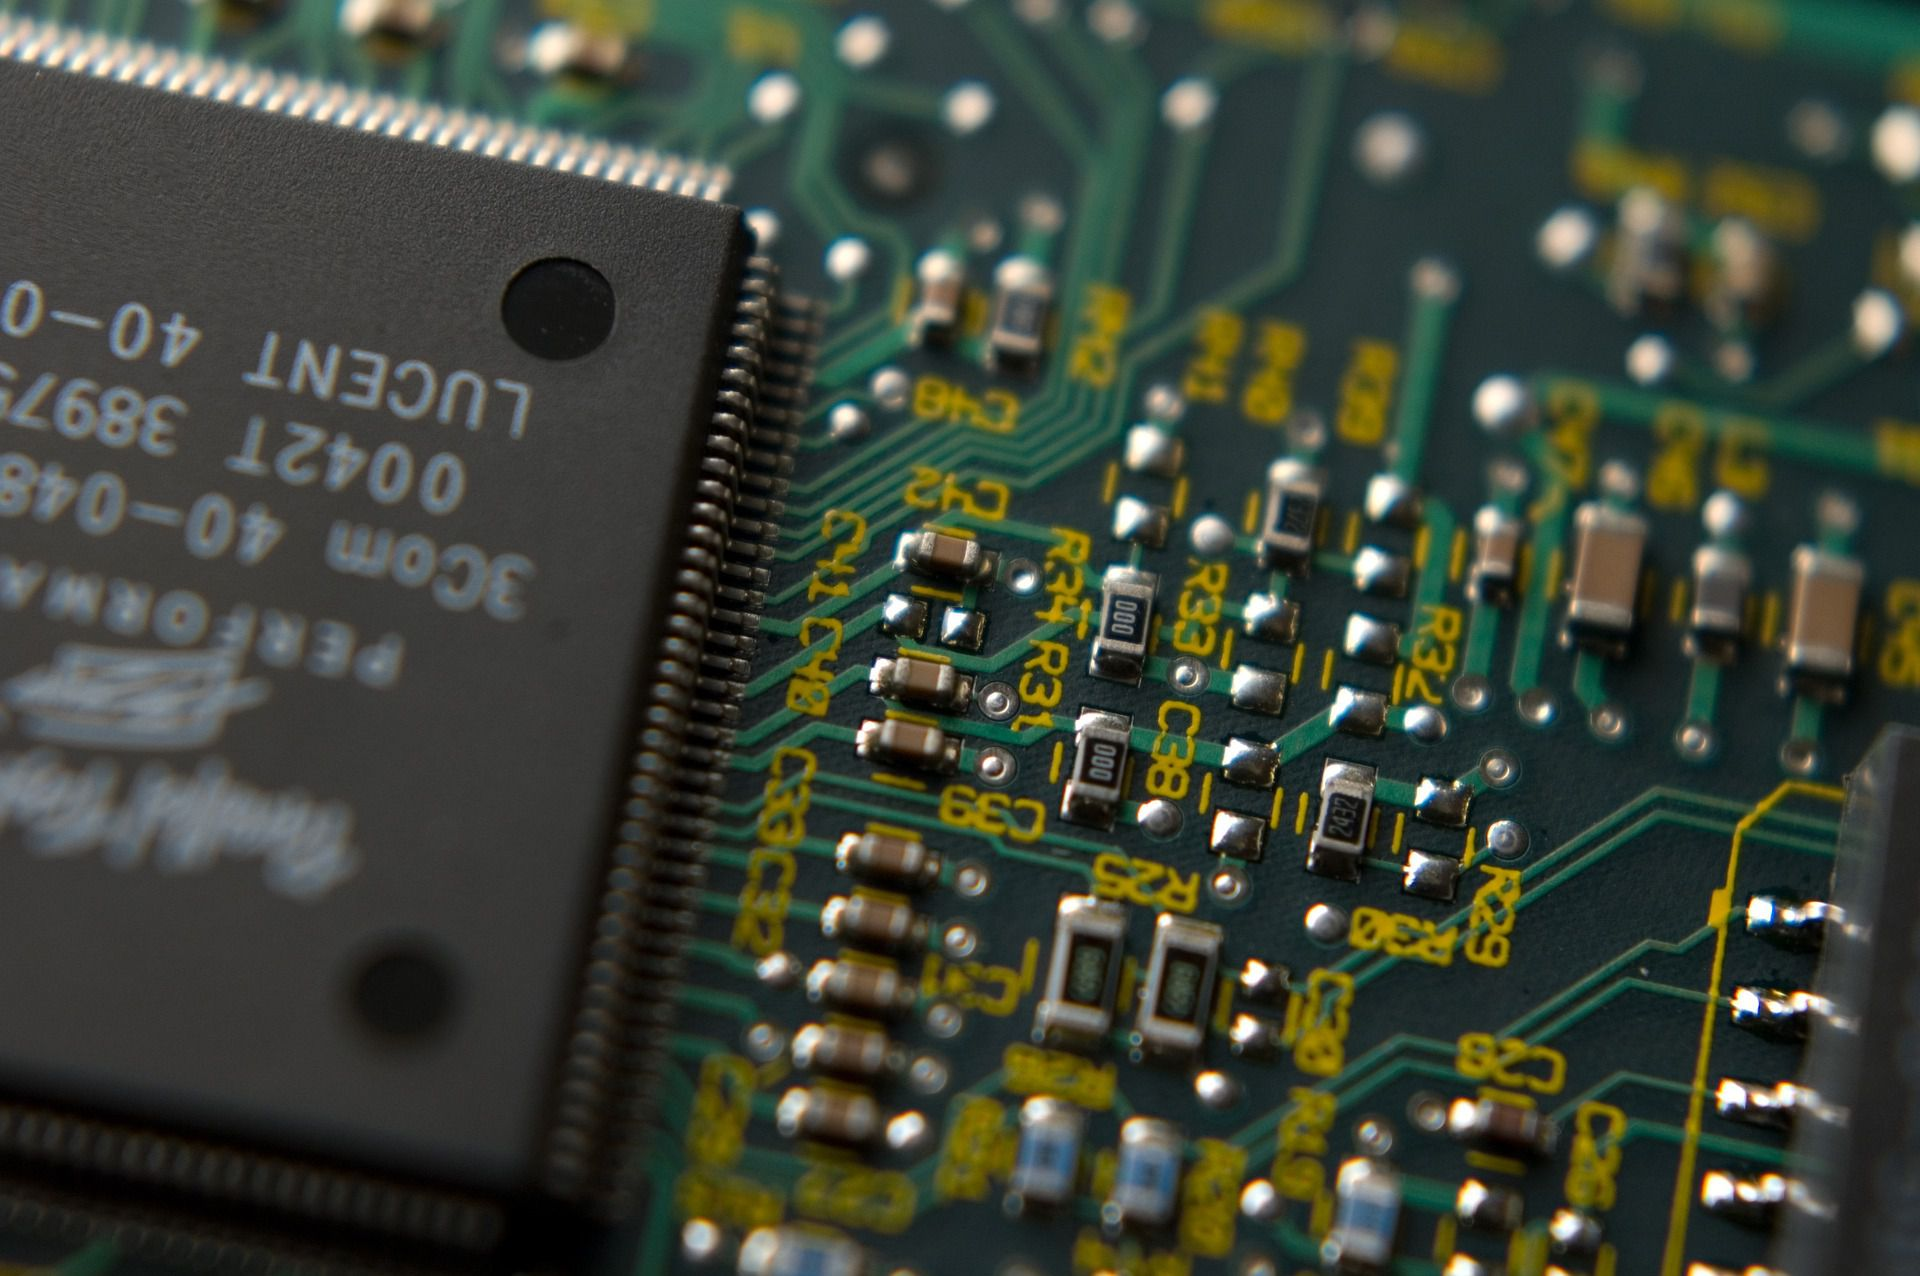 Best Semiconductor Etfs For Q1 2020